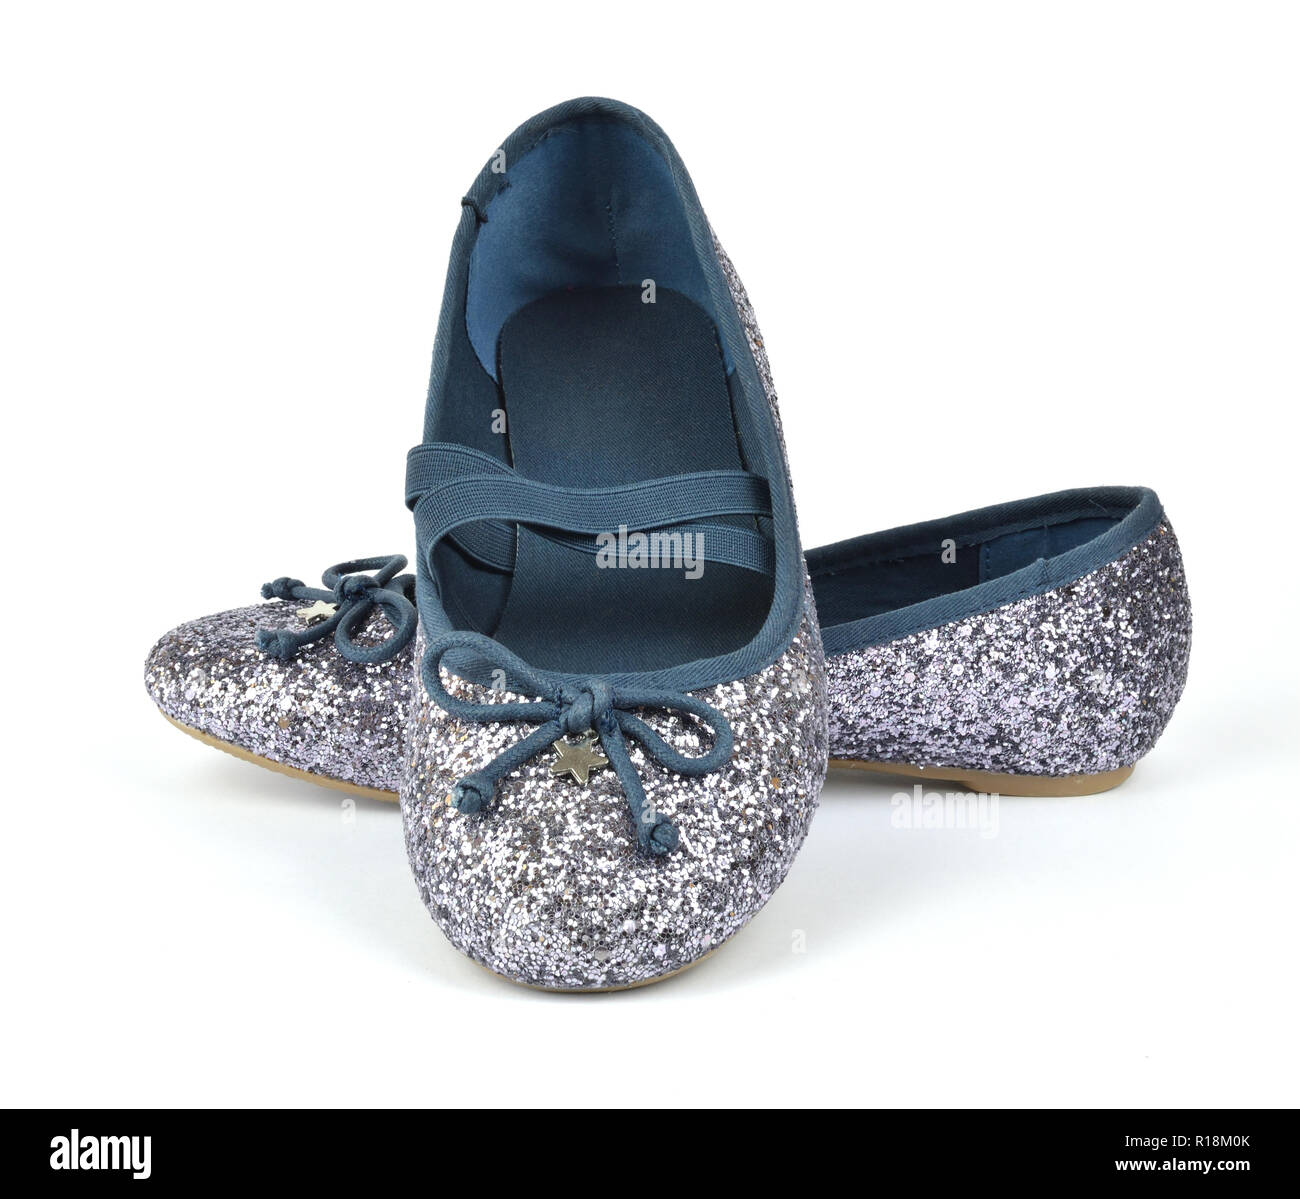 Shimmer silver blue ballerina flat shoes with crossed elastic drawstrings on white background - Stock Image